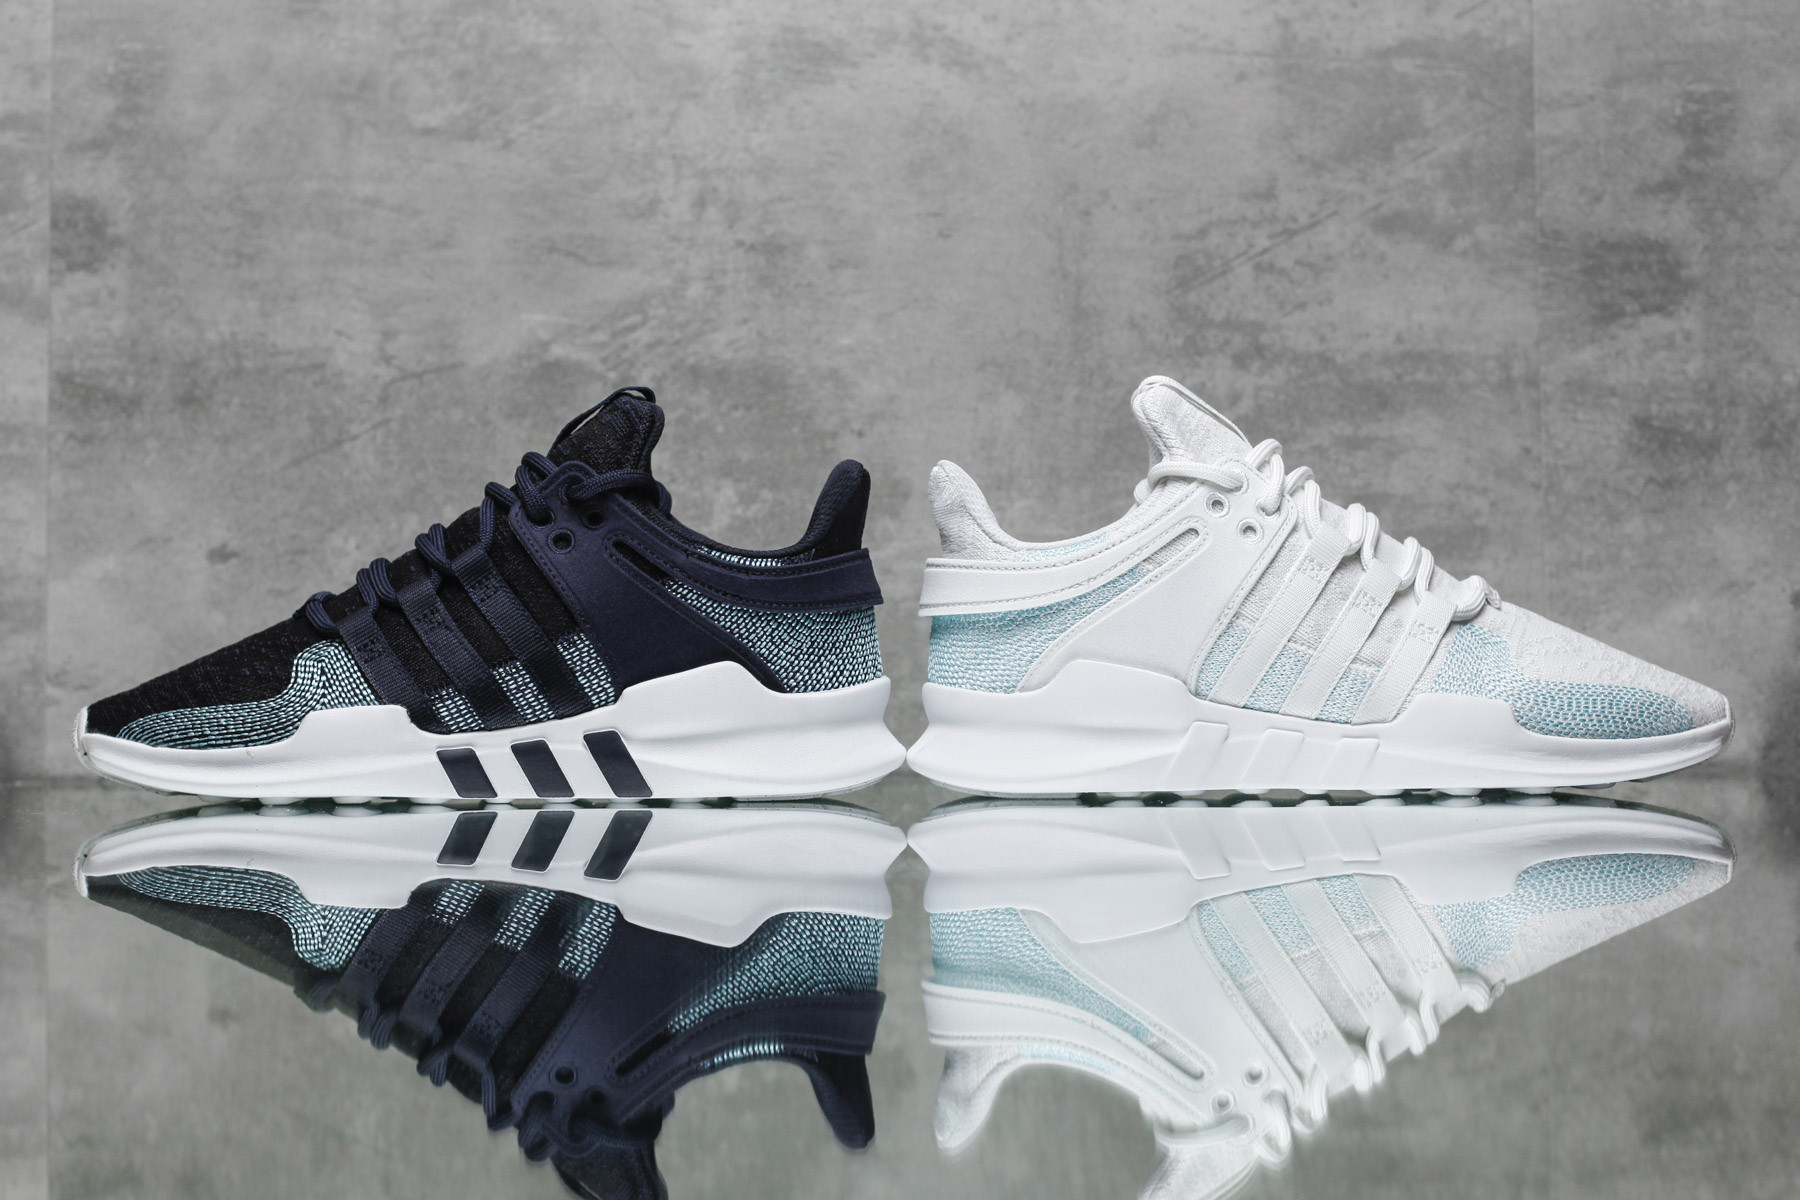 Adidas EQT Soporte ADV EQT CK Parley Sneakers 10368 Low top Sneakers 47927a0 - hotlink.pw